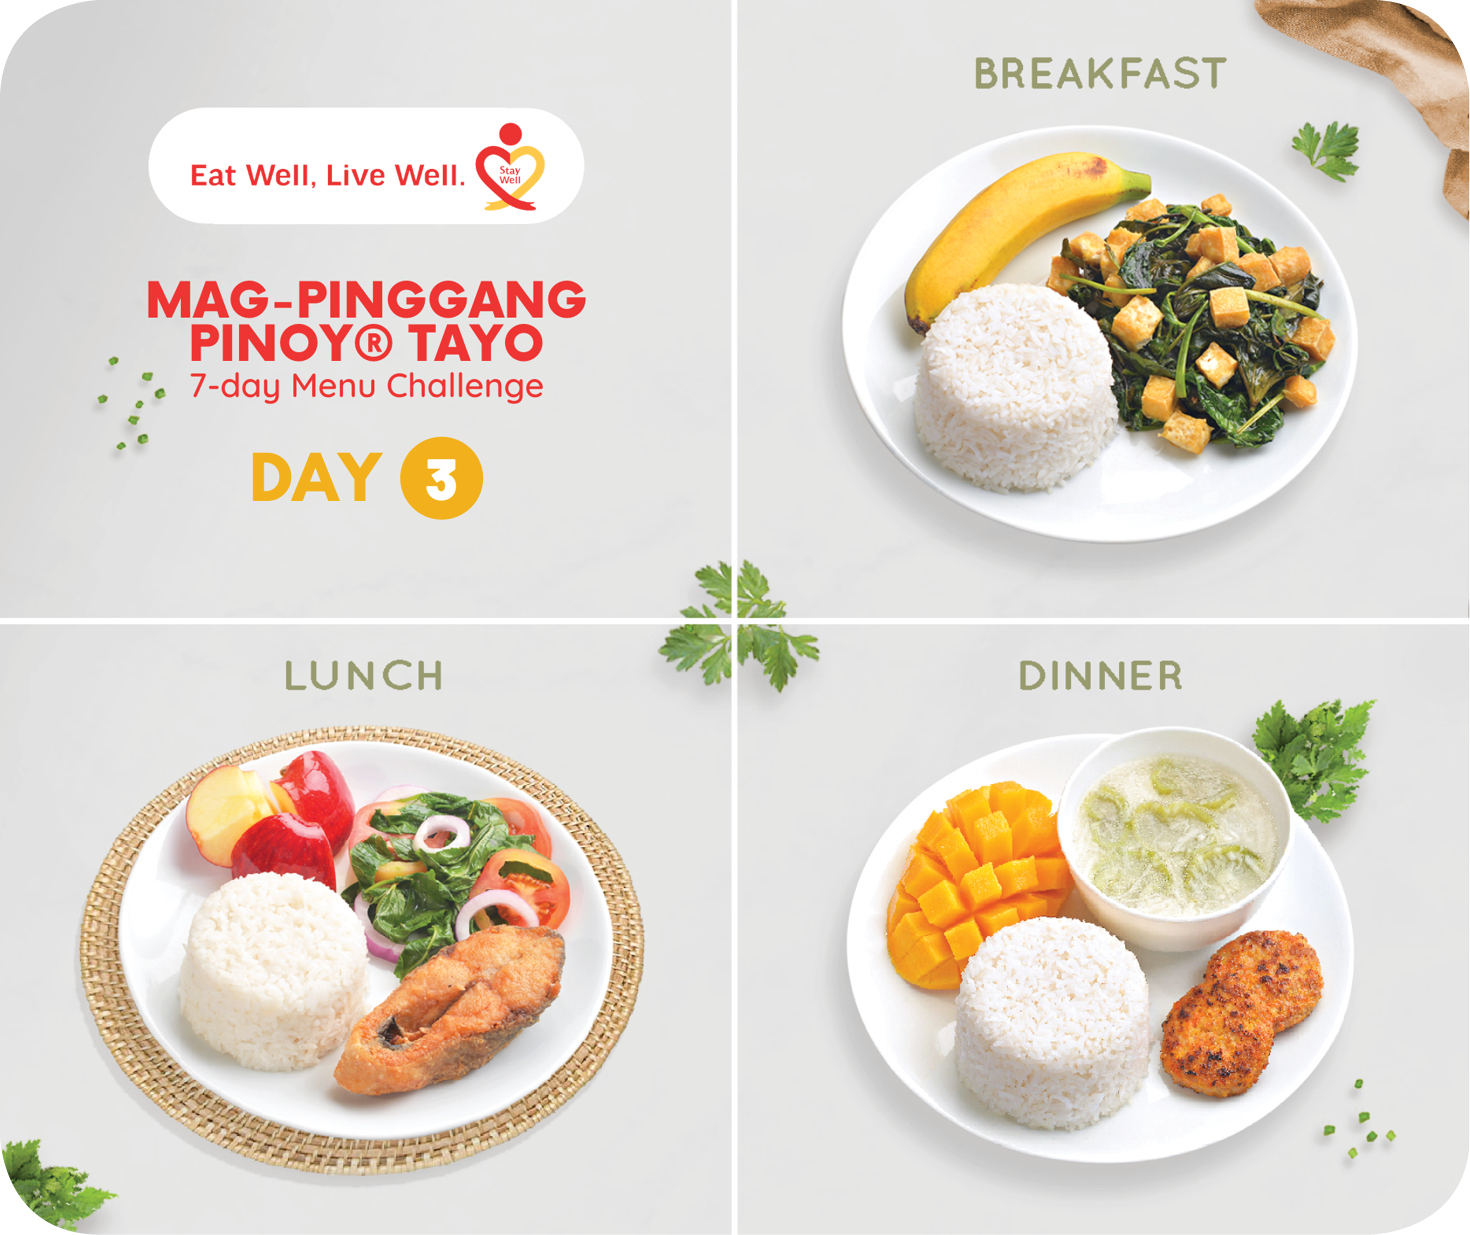 Day 3 Mag-Pinggang Pinoy® Tayo 7-day Menu Challenge